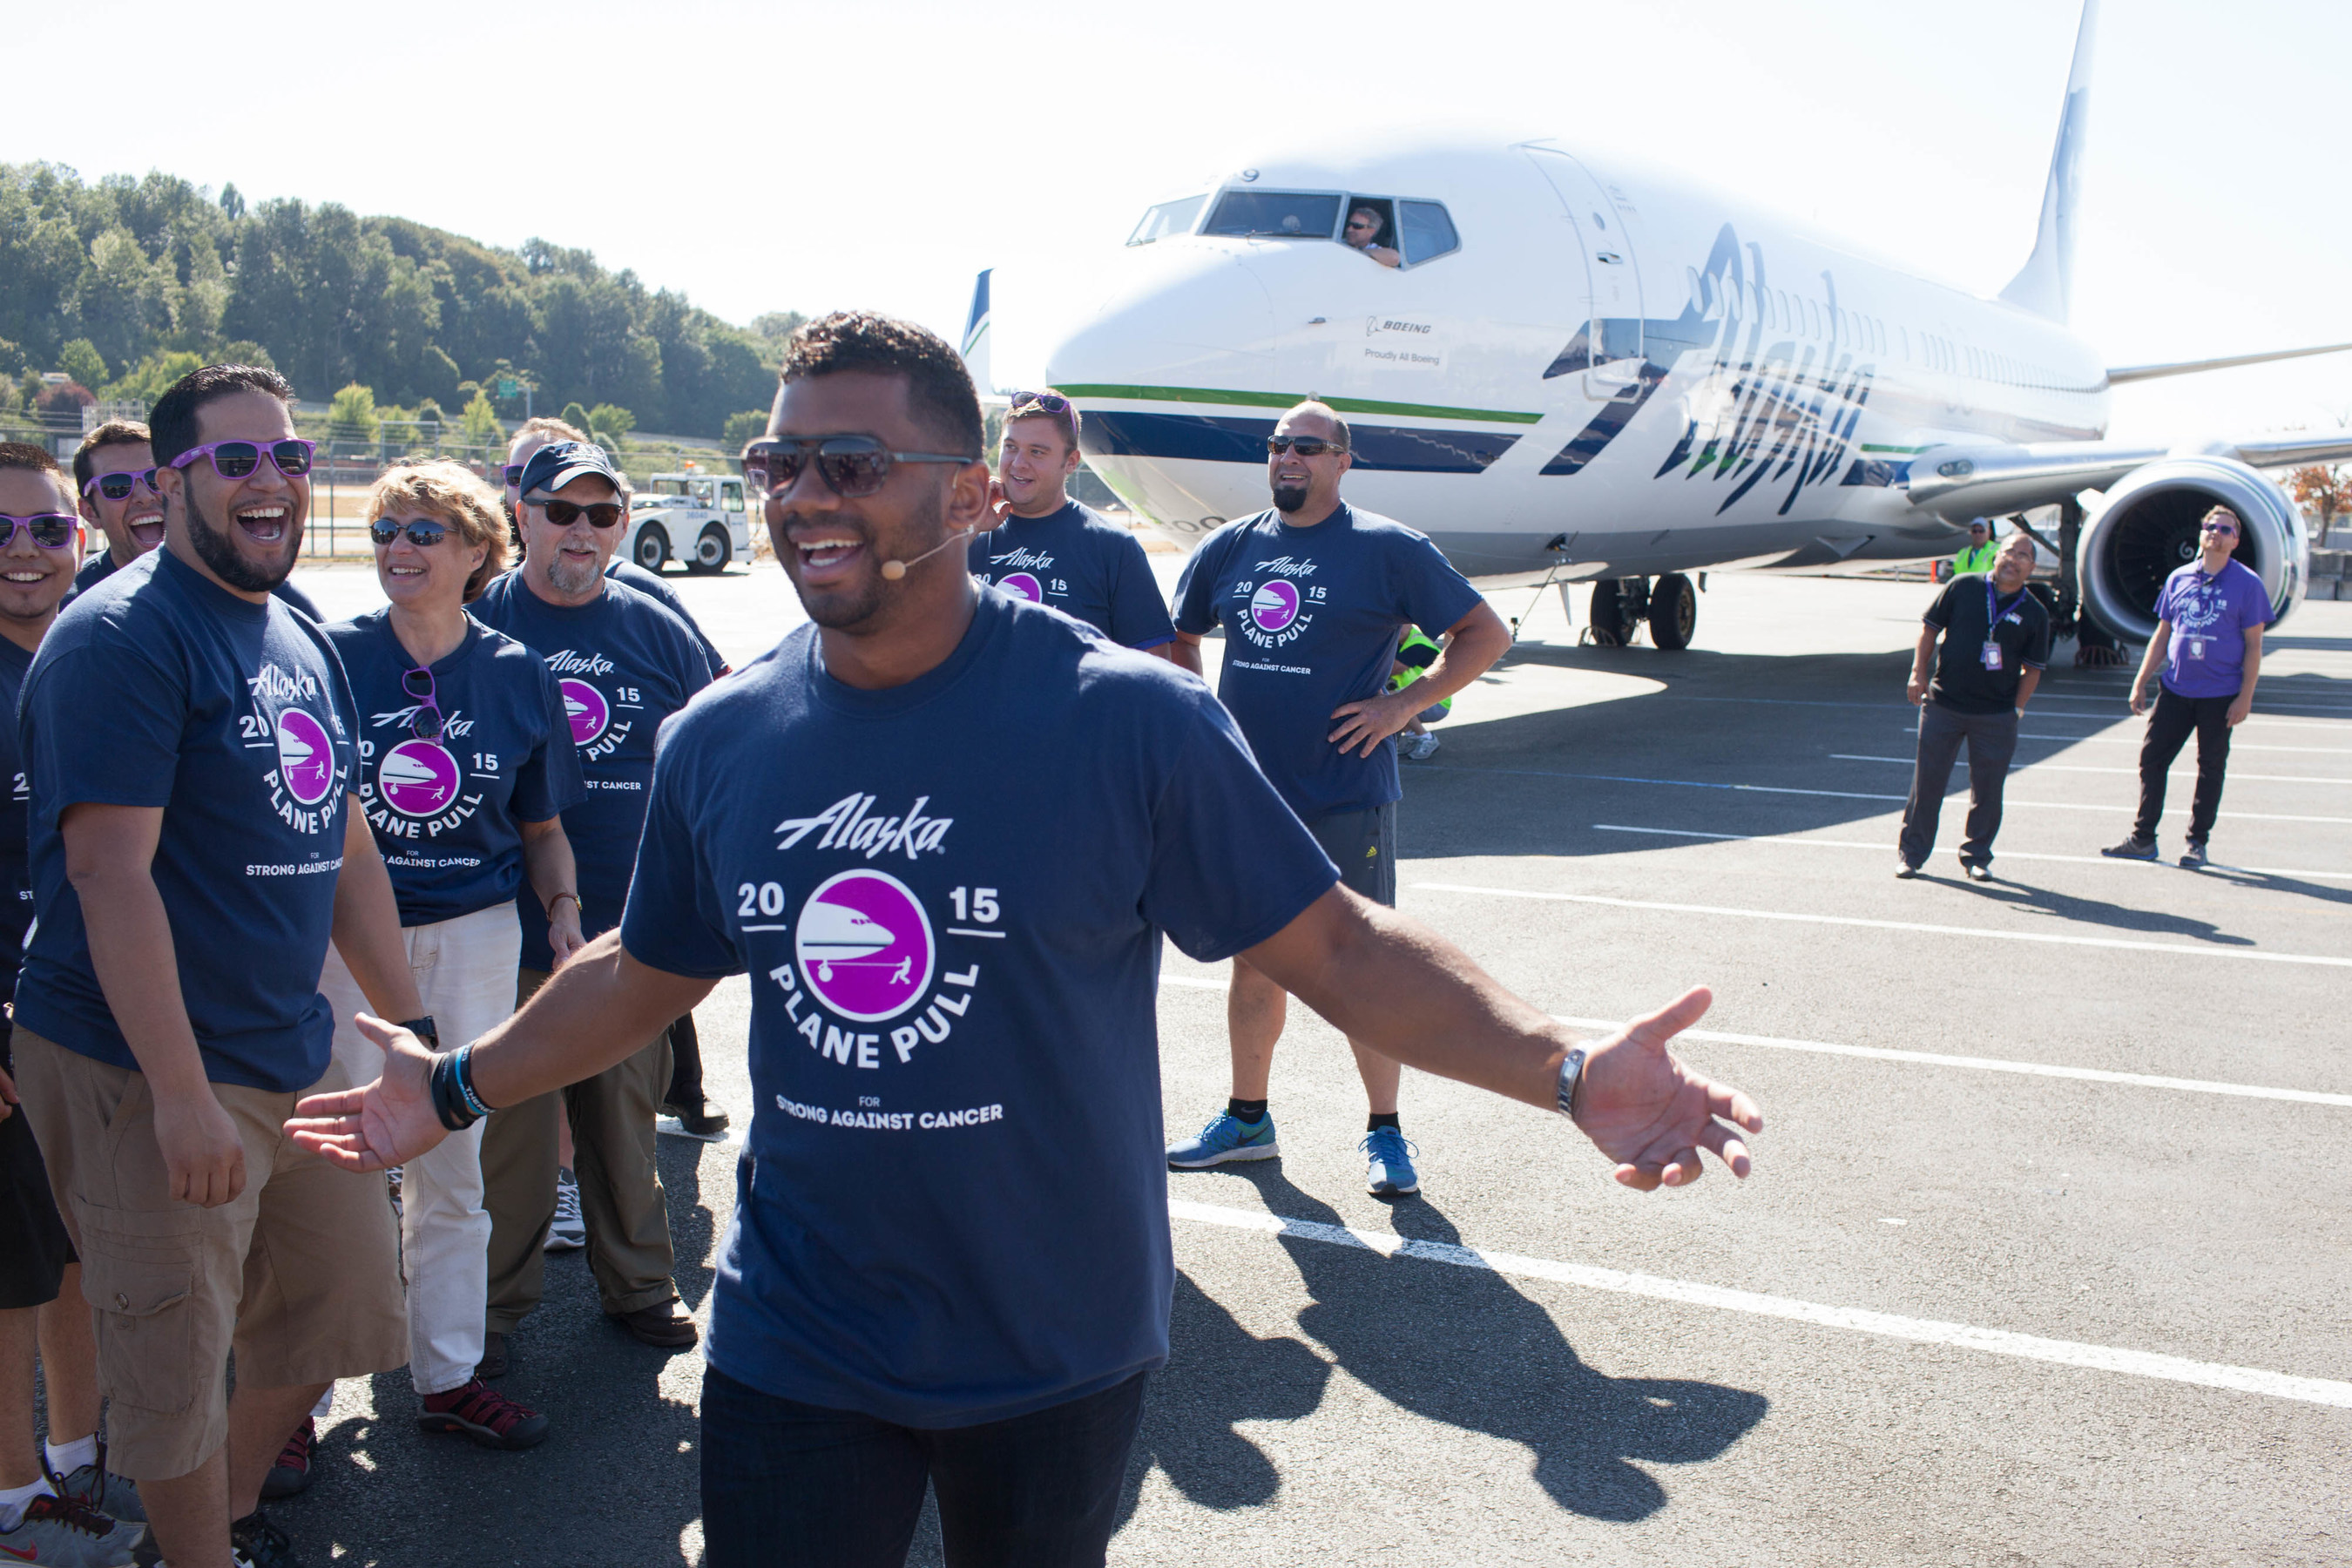 Seattle Seahawks Quarterback Russell Wilson pulls a plane during the Alaska Airlines Plane Pull with Joel McHale benefiting Strong Against Cancer at The Museum of Flight in Seattle on Tuesday, July 28, 2015. Team Wilson pulled the 737 in 16.9 seconds, with Team Joel coming in at over a minute.